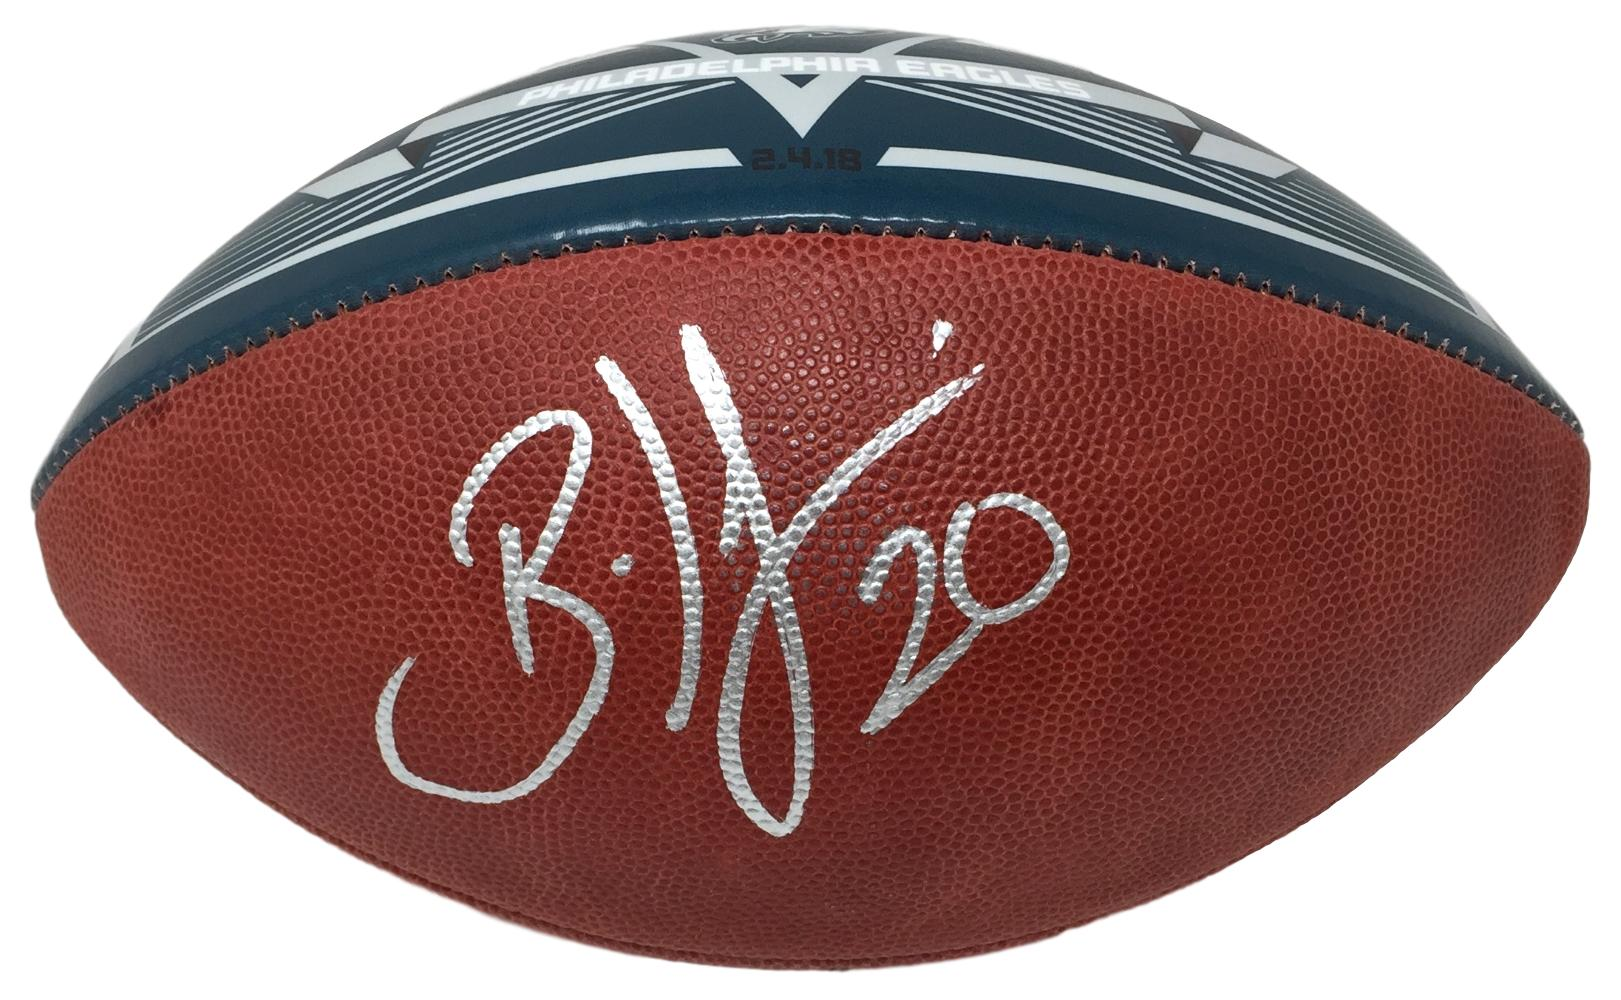 Brian Dawkins Signed Philadelphia Eagles Super Bowl 52 Green Duke Football  JSA db88fd0e2